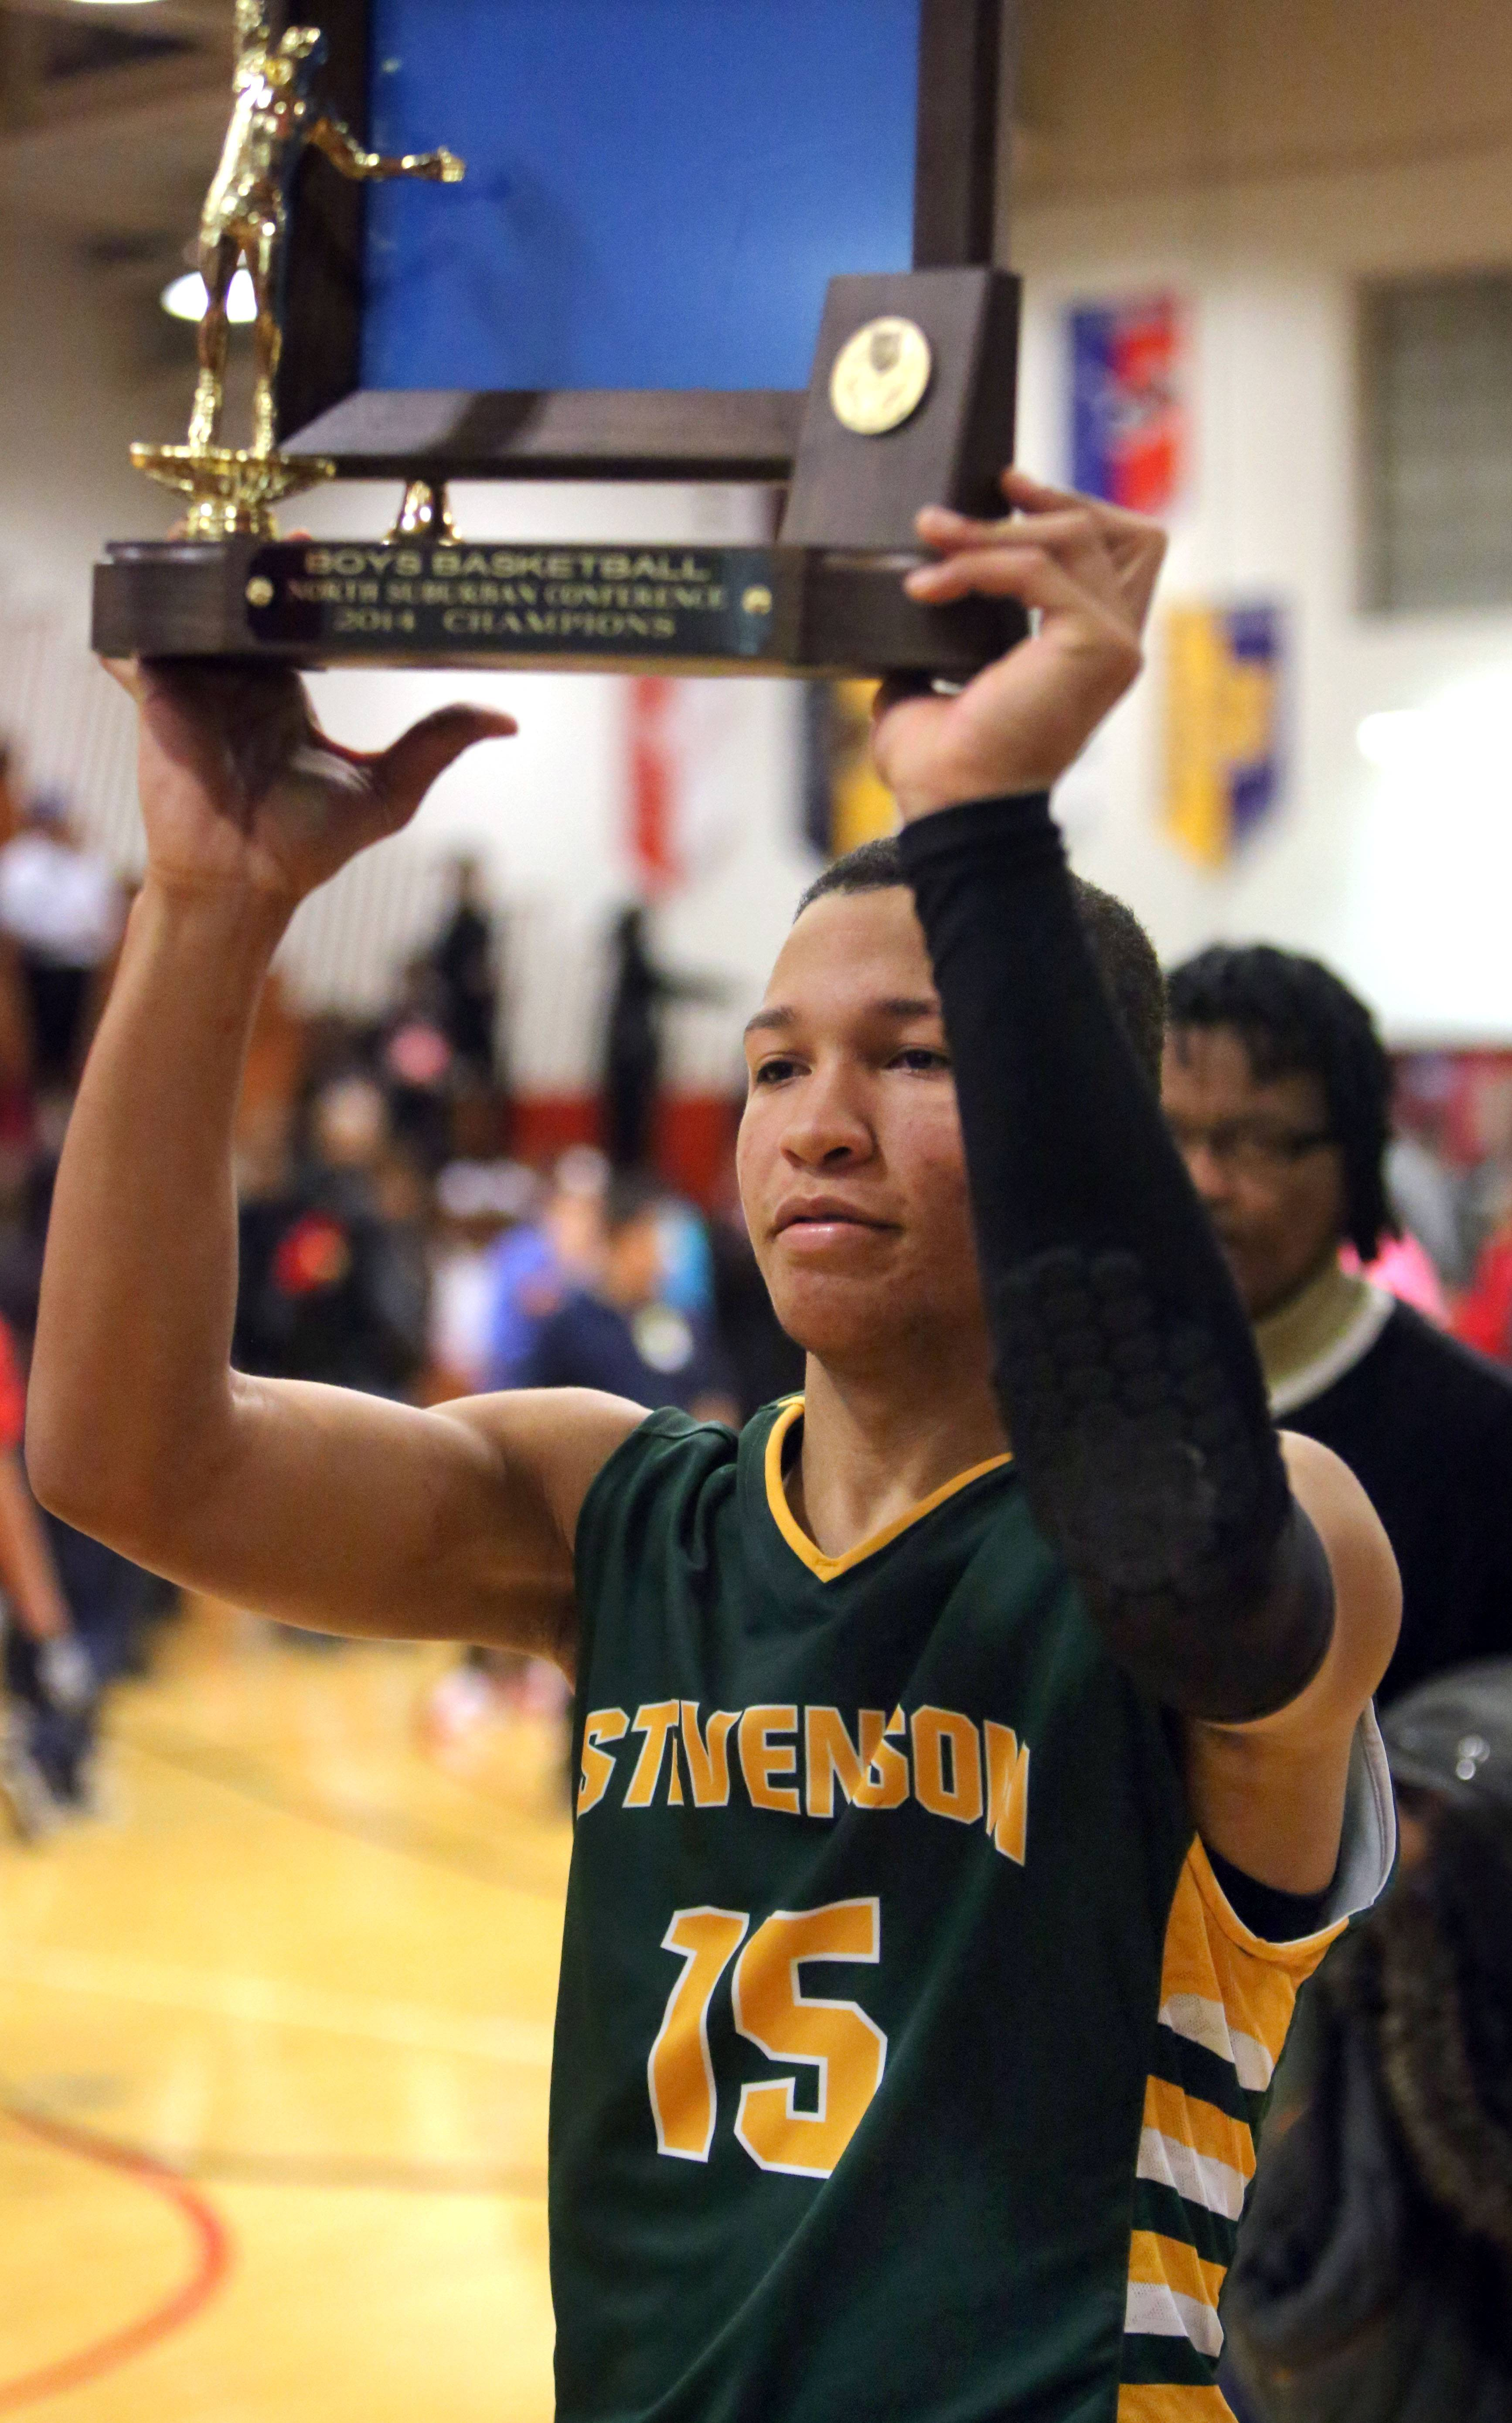 Stevenson's Jalen Brunson holds up the North Suburban Conference trophy after the Pats' victory over North Chicago in the North Suburban Conference championship game Wednesday night at North Chicago.